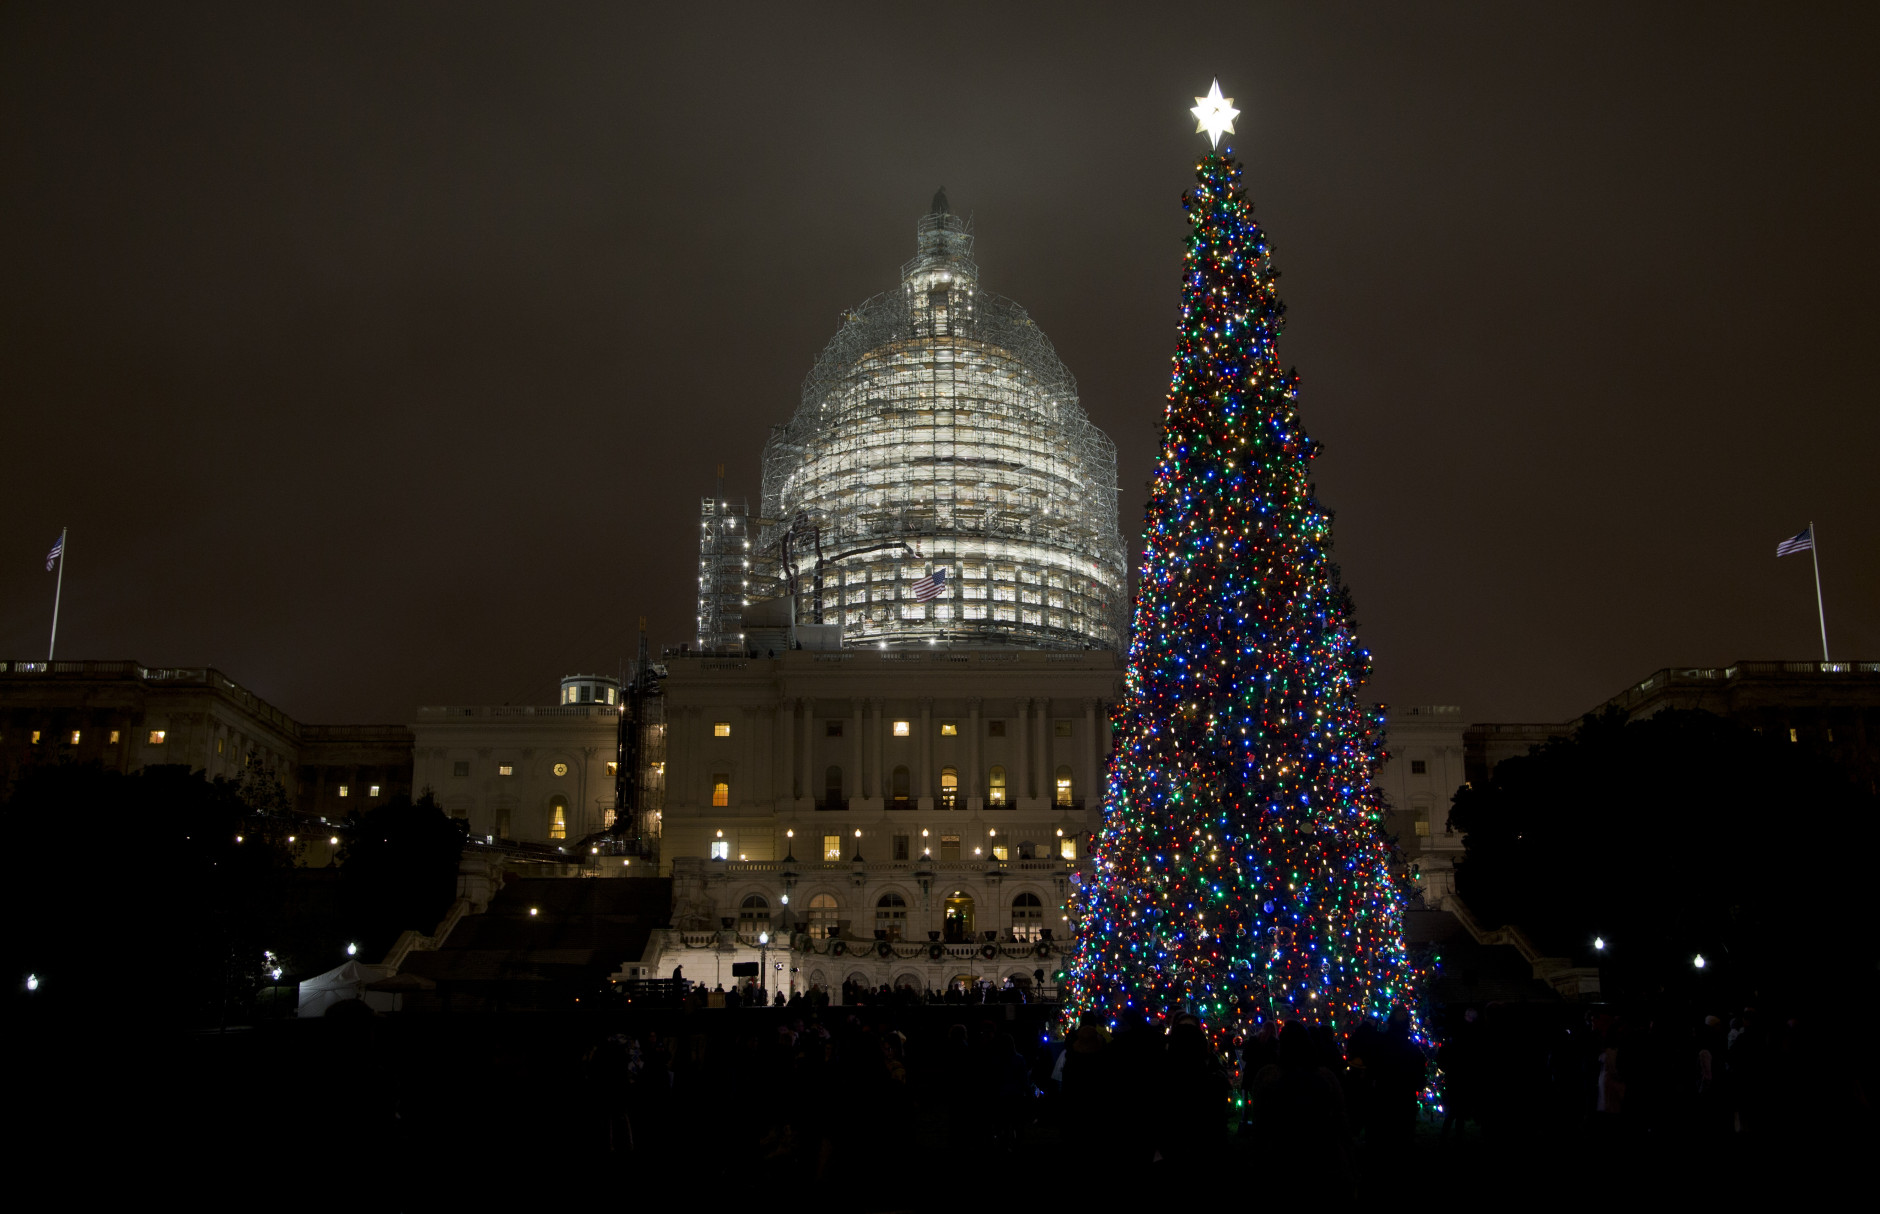 The U.S. Capitol Christmas tree is lit, after a ceremony on the West Front of the Capitol in Washington, Wednesday, Dec. 2, 2015. The 2015 U.S. Capitol Christmas Tree is a 74 feet Lutz tree from Chugach National Forest in Alaska.   (AP Photo/Manuel Balce Ceneta)